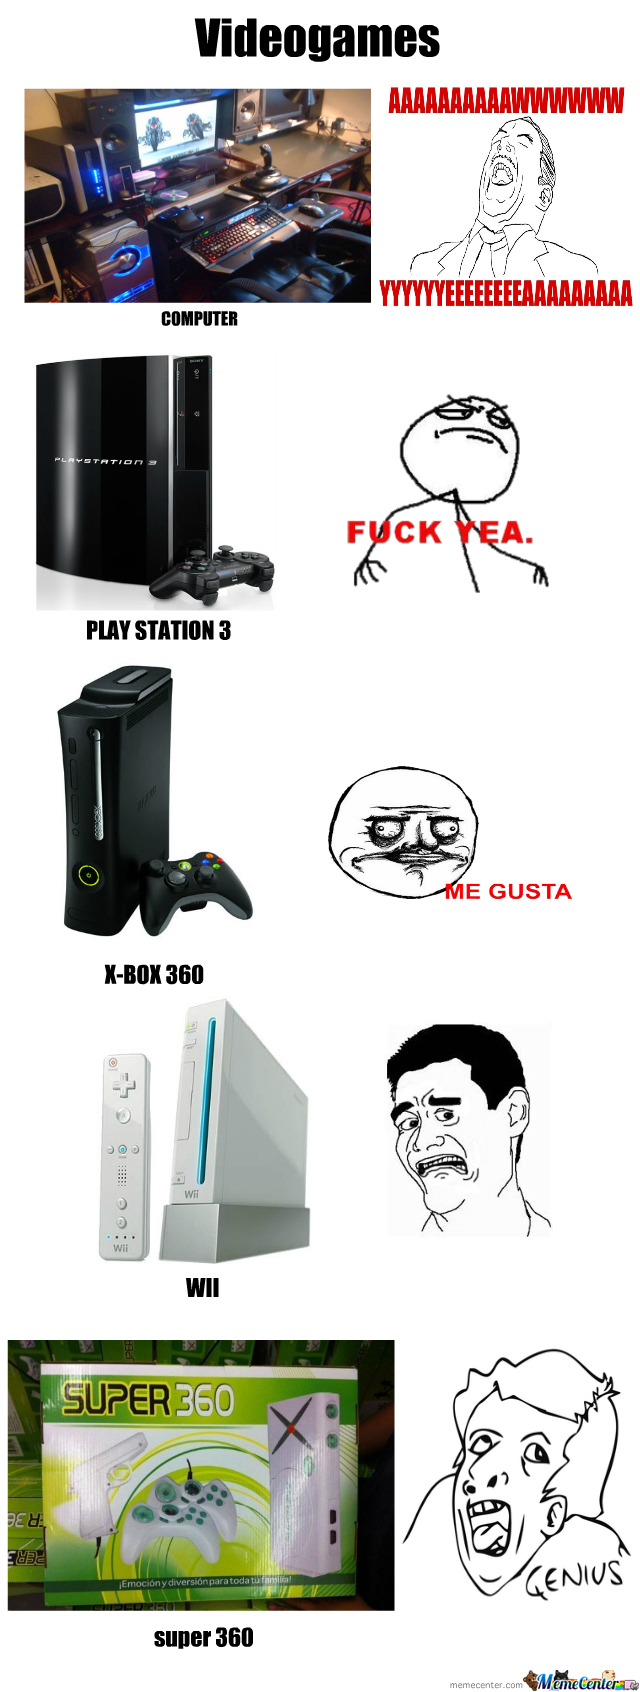 New Videogame System